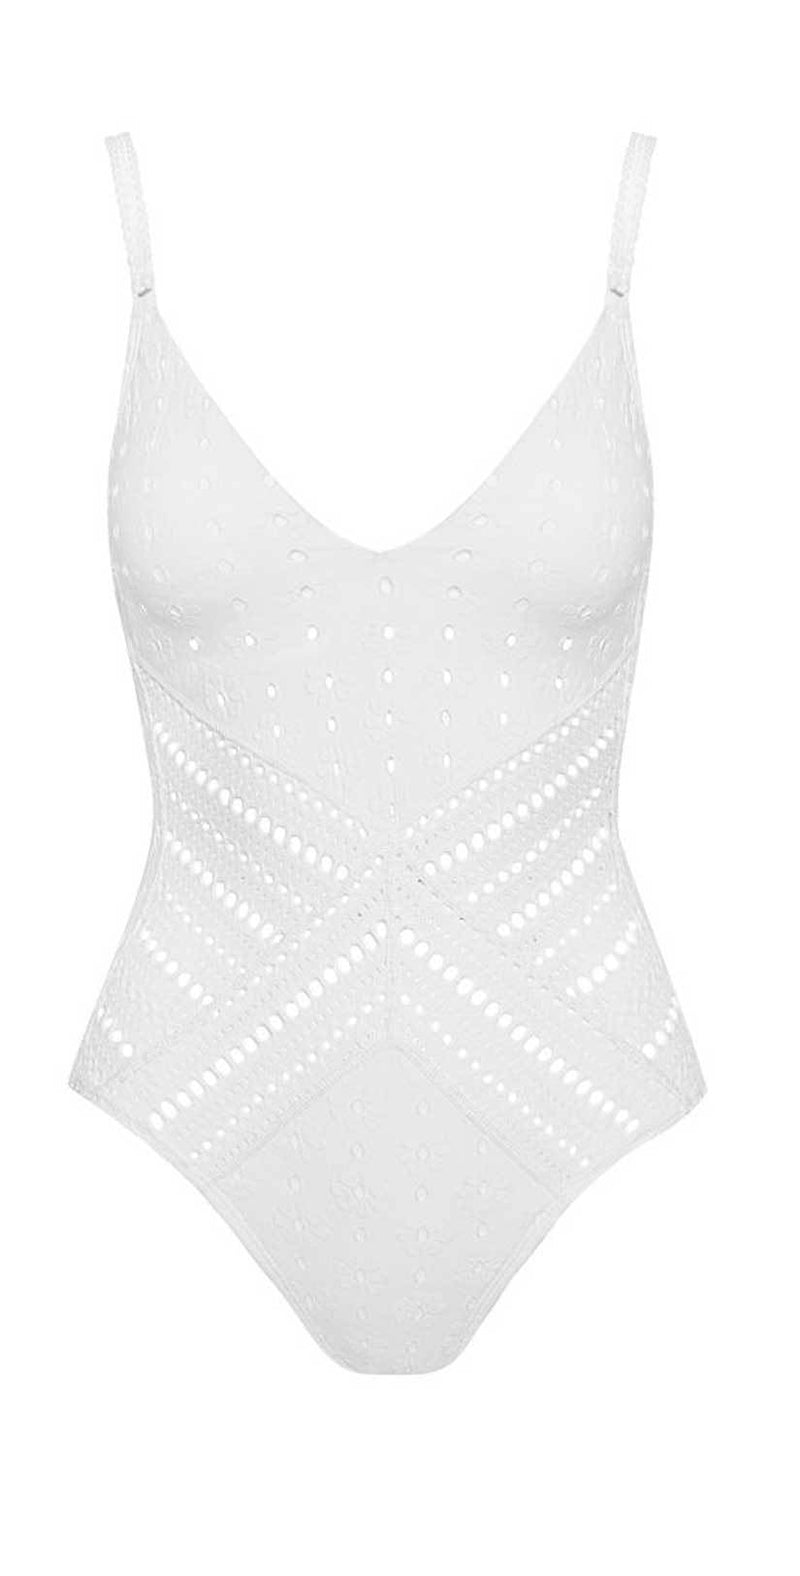 Robin Piccone Clarissa V Neck Crochet One Piece In White 180311-WHT: